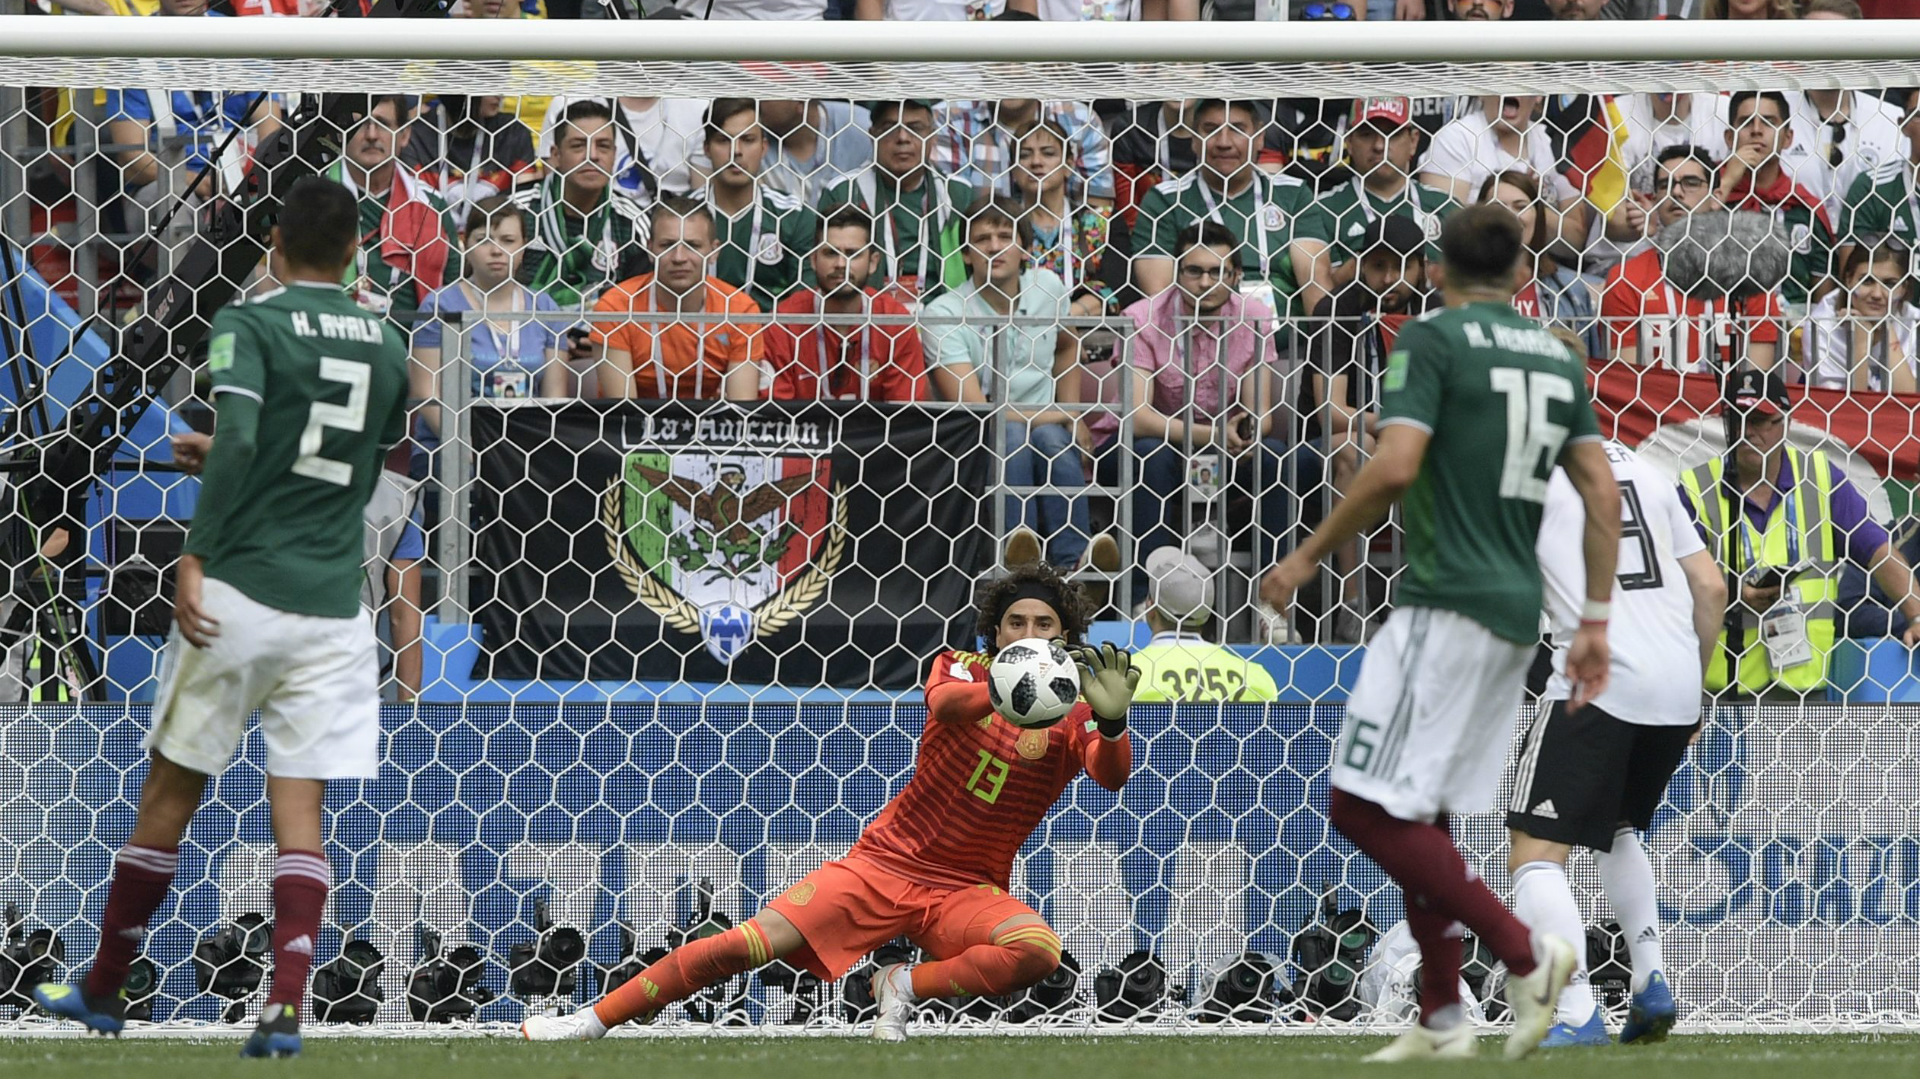 Mexico's future in the World Cup? The possibilities are endless